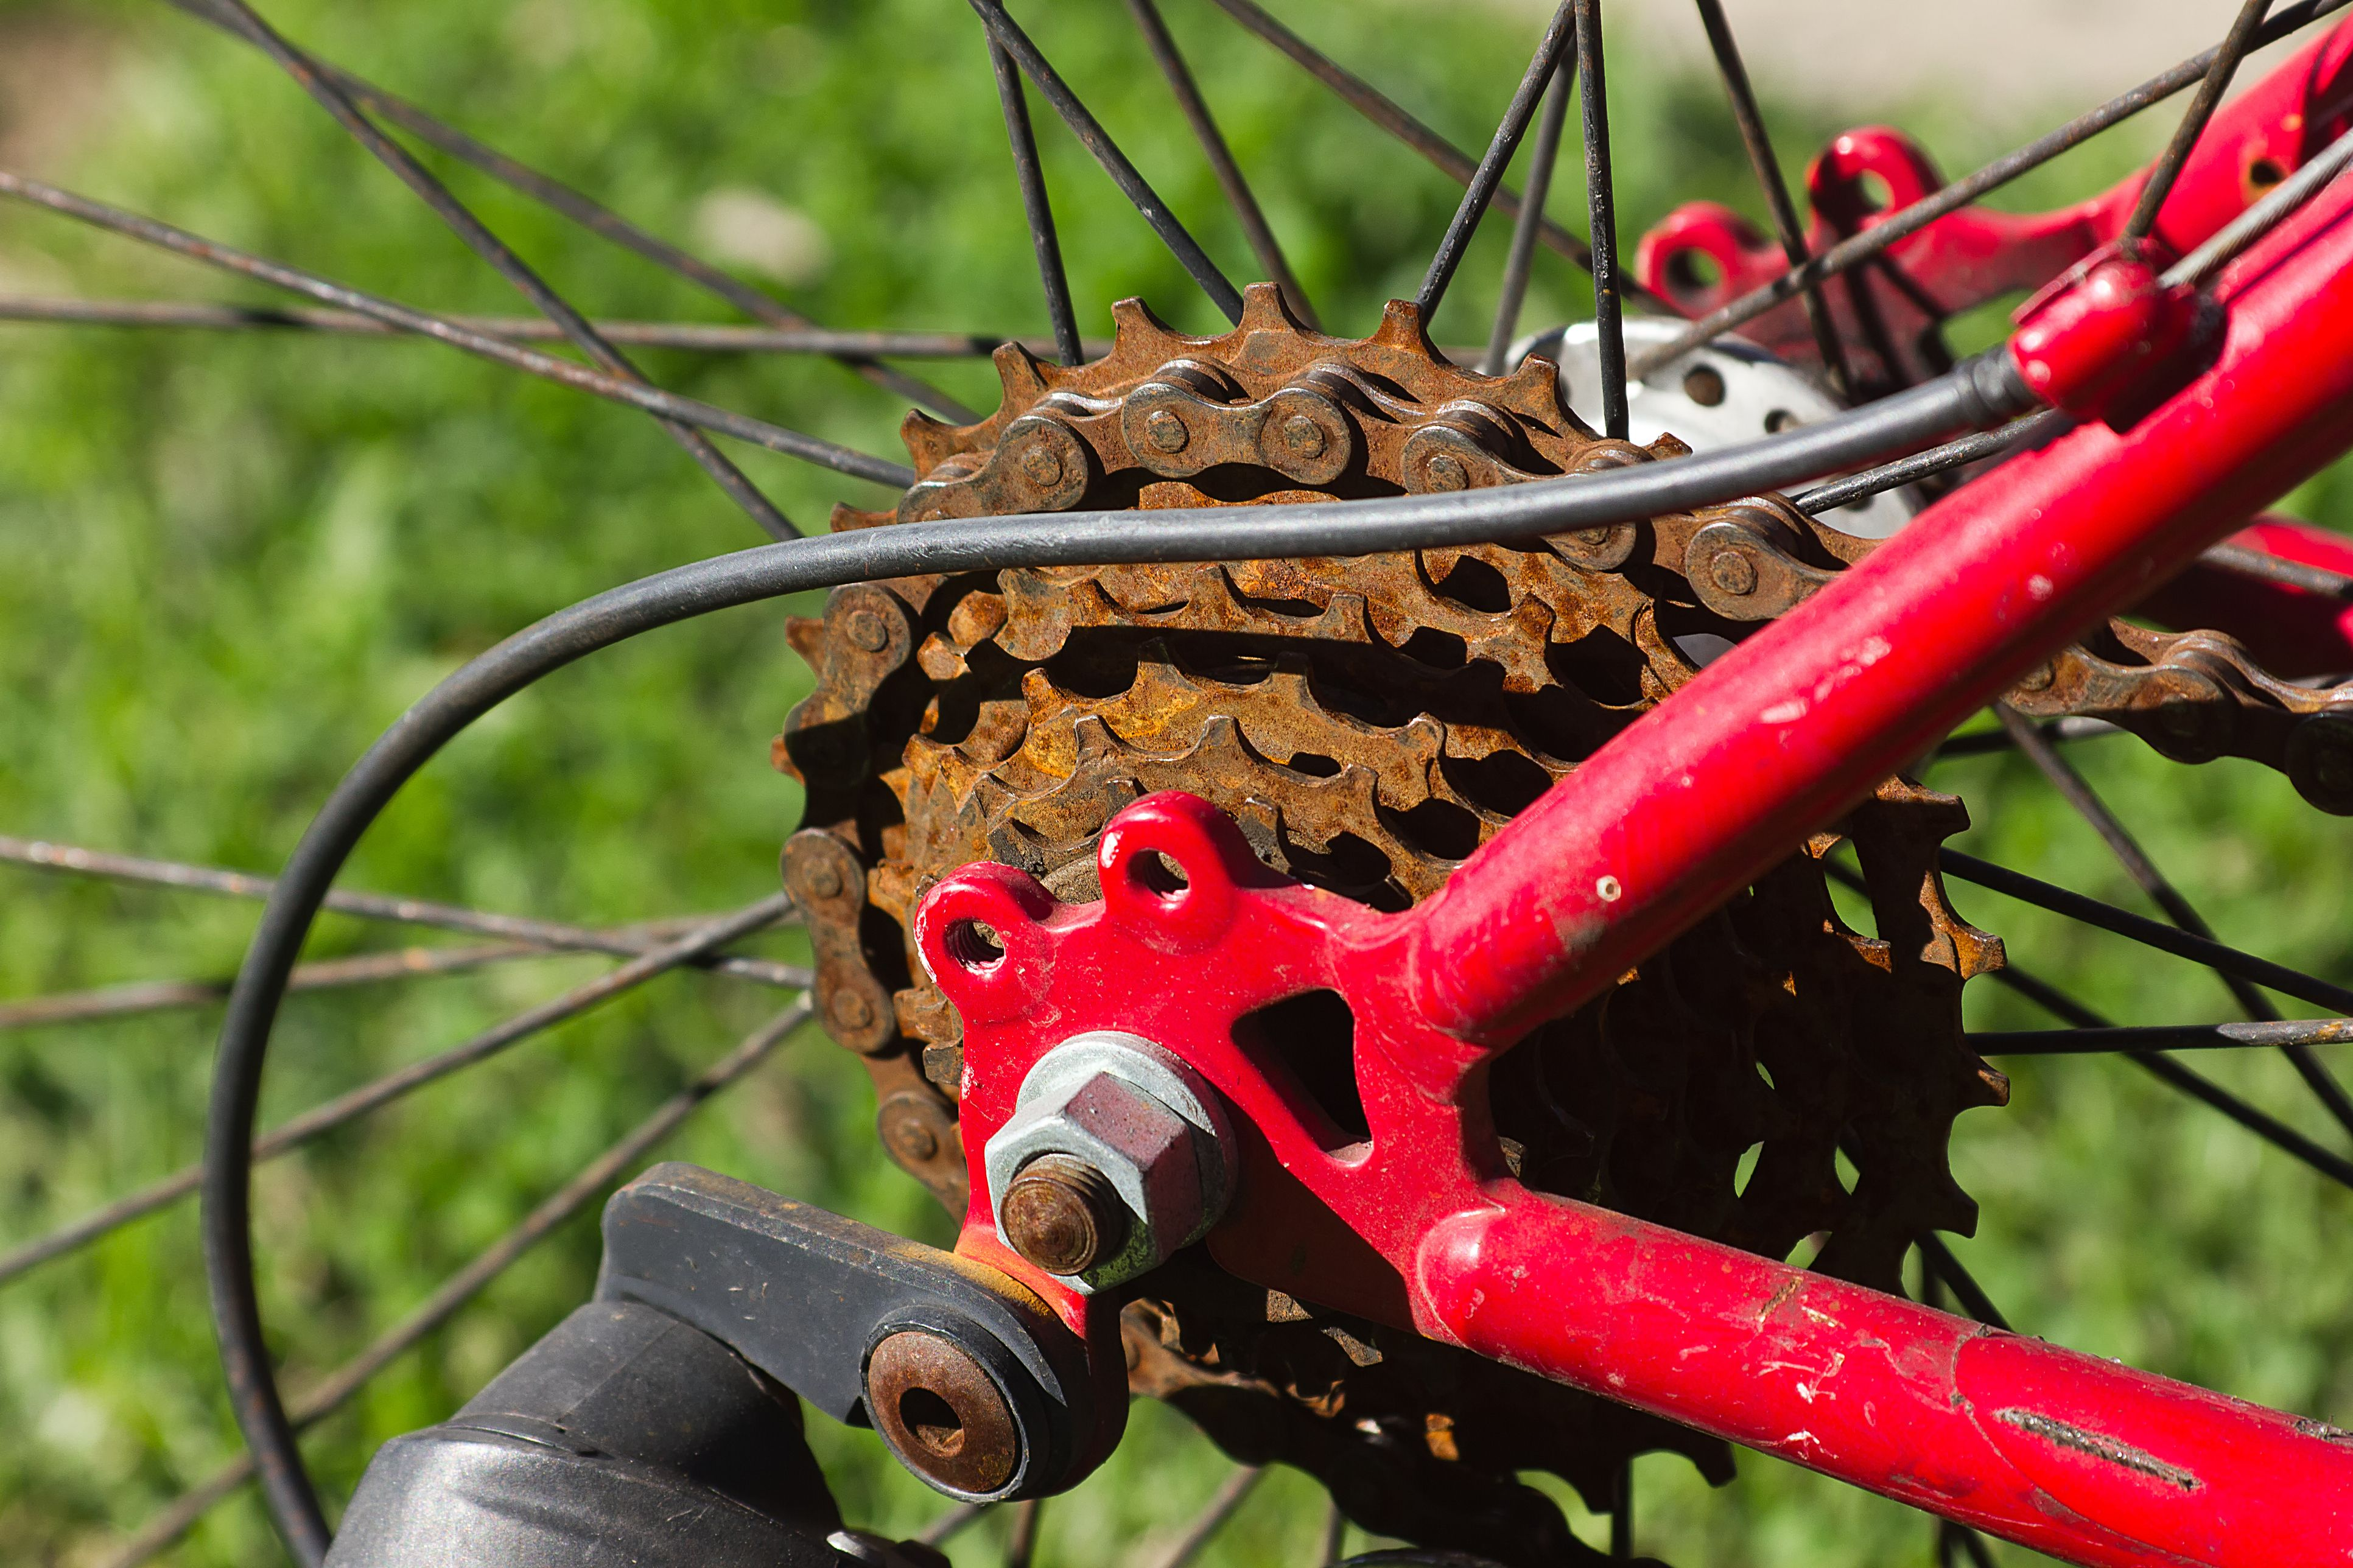 Storing Your Bike Outside | Leaving Your Bike in the Rain or